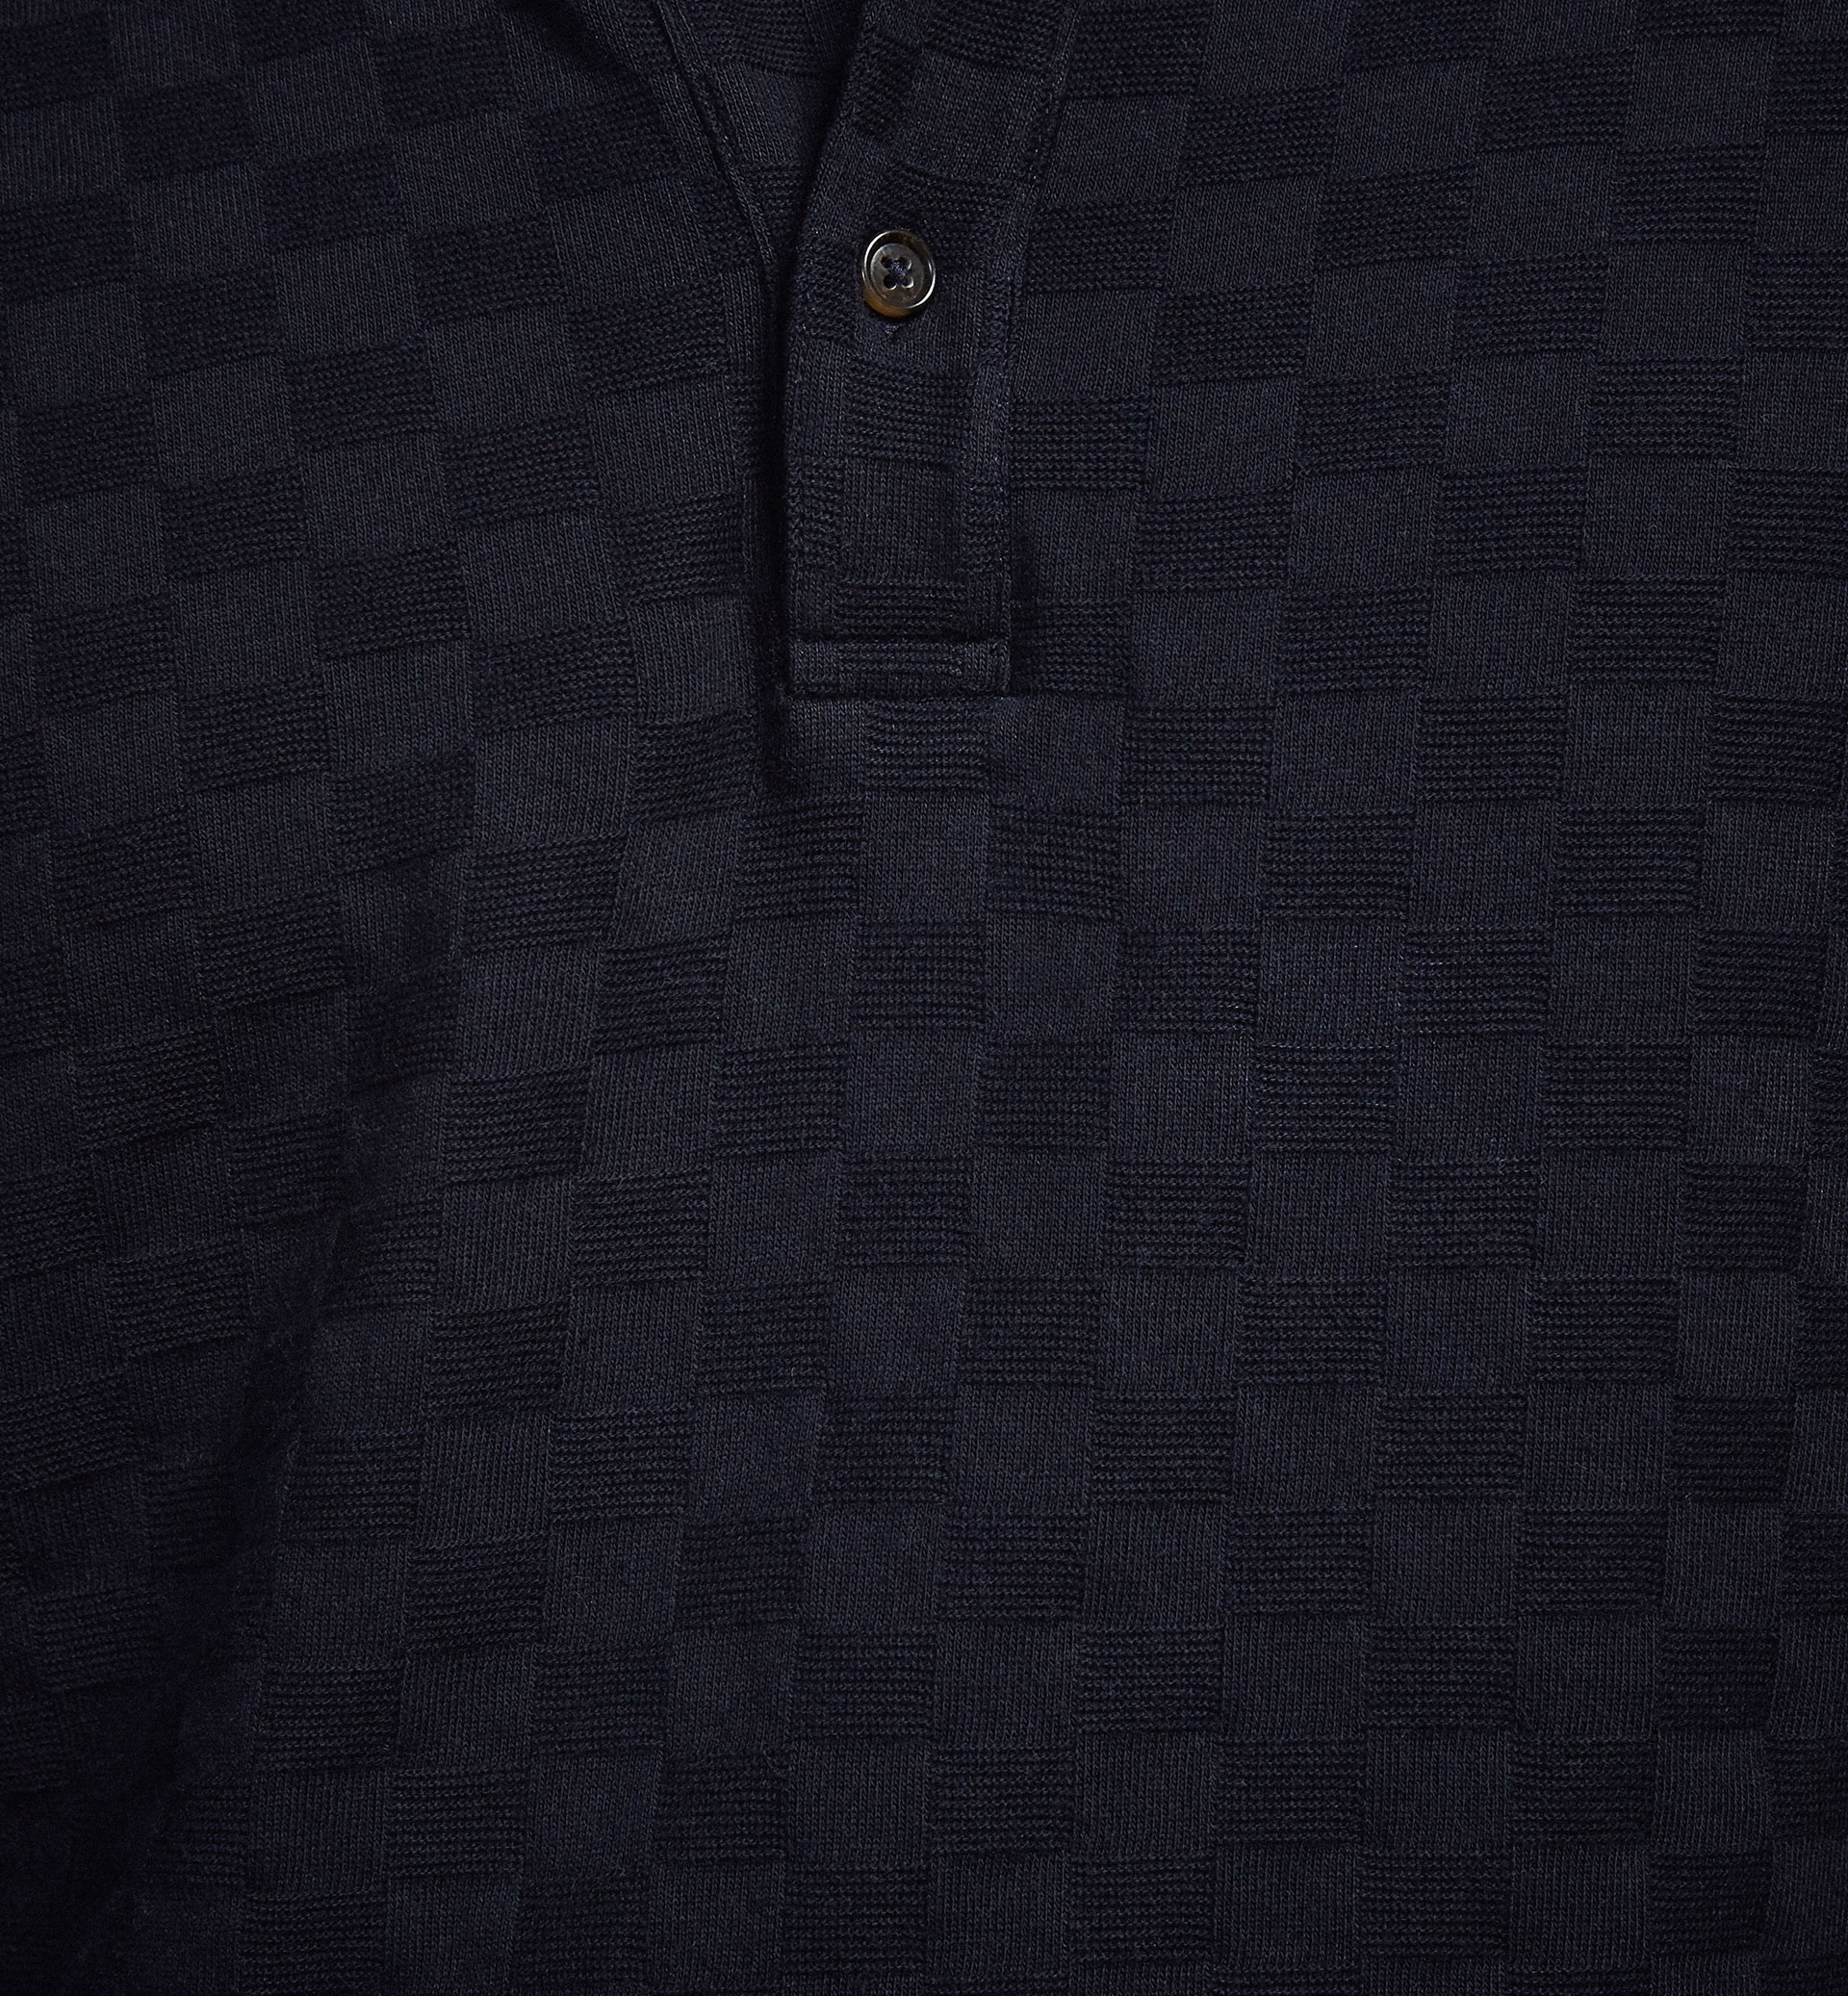 LIMITED EDITION CHECK TEXTURED WEAVE POLO SHIRT